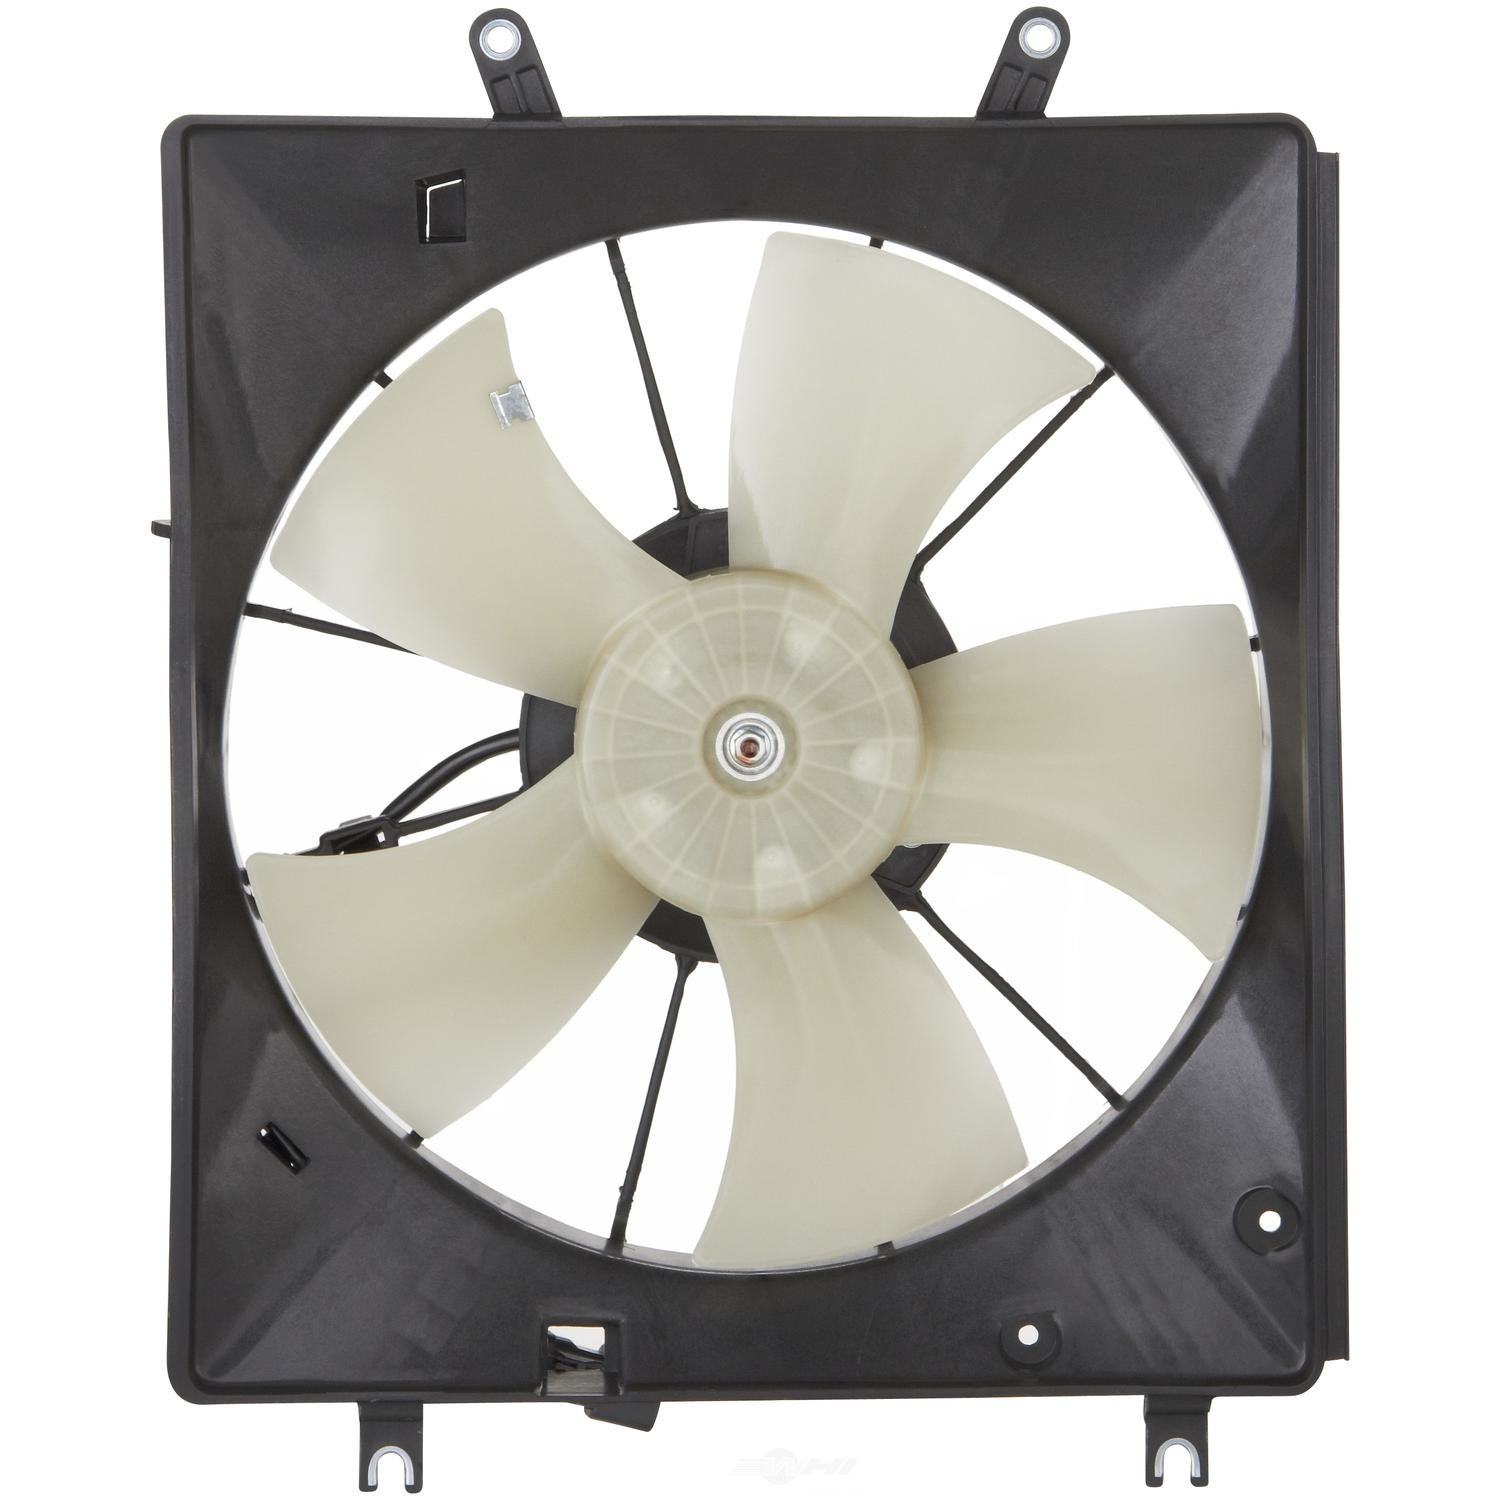 SPECTRA PREMIUM IND., INC. - Engine Cooling Fan Assembly - SPC CF18026